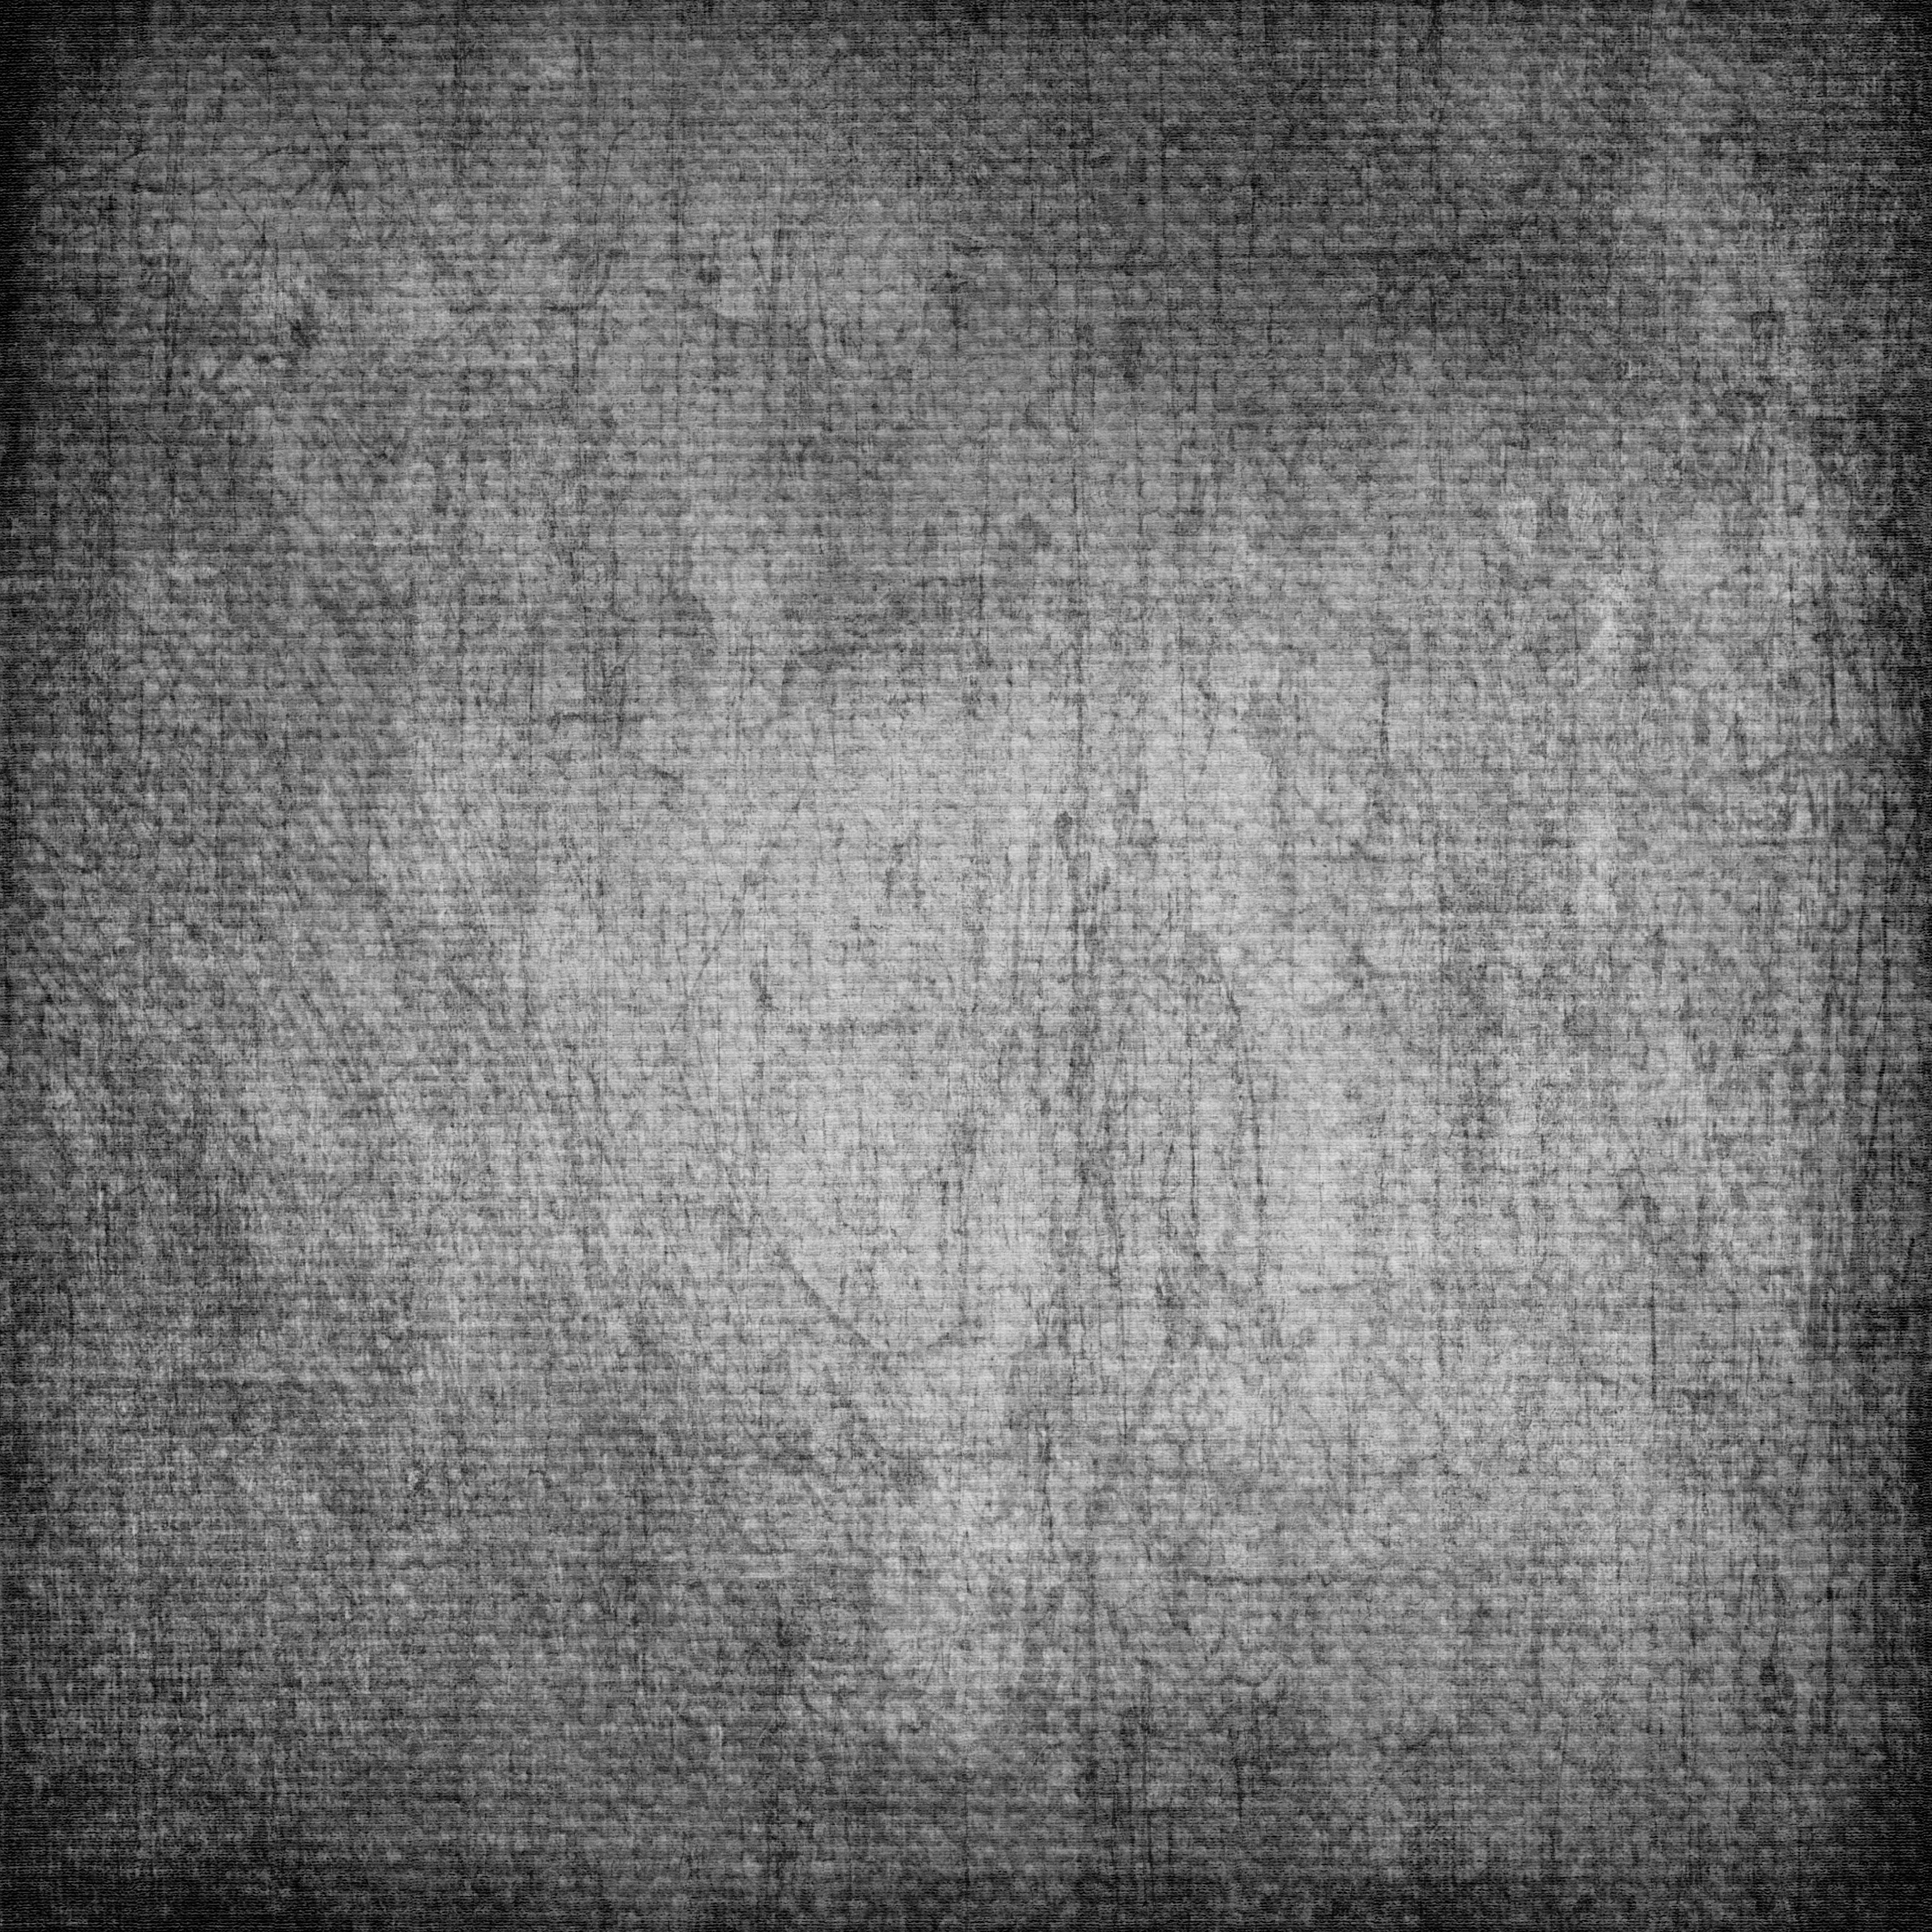 Grunge Texture Overlay 2 by HGGraphicDesigns on DeviantArt